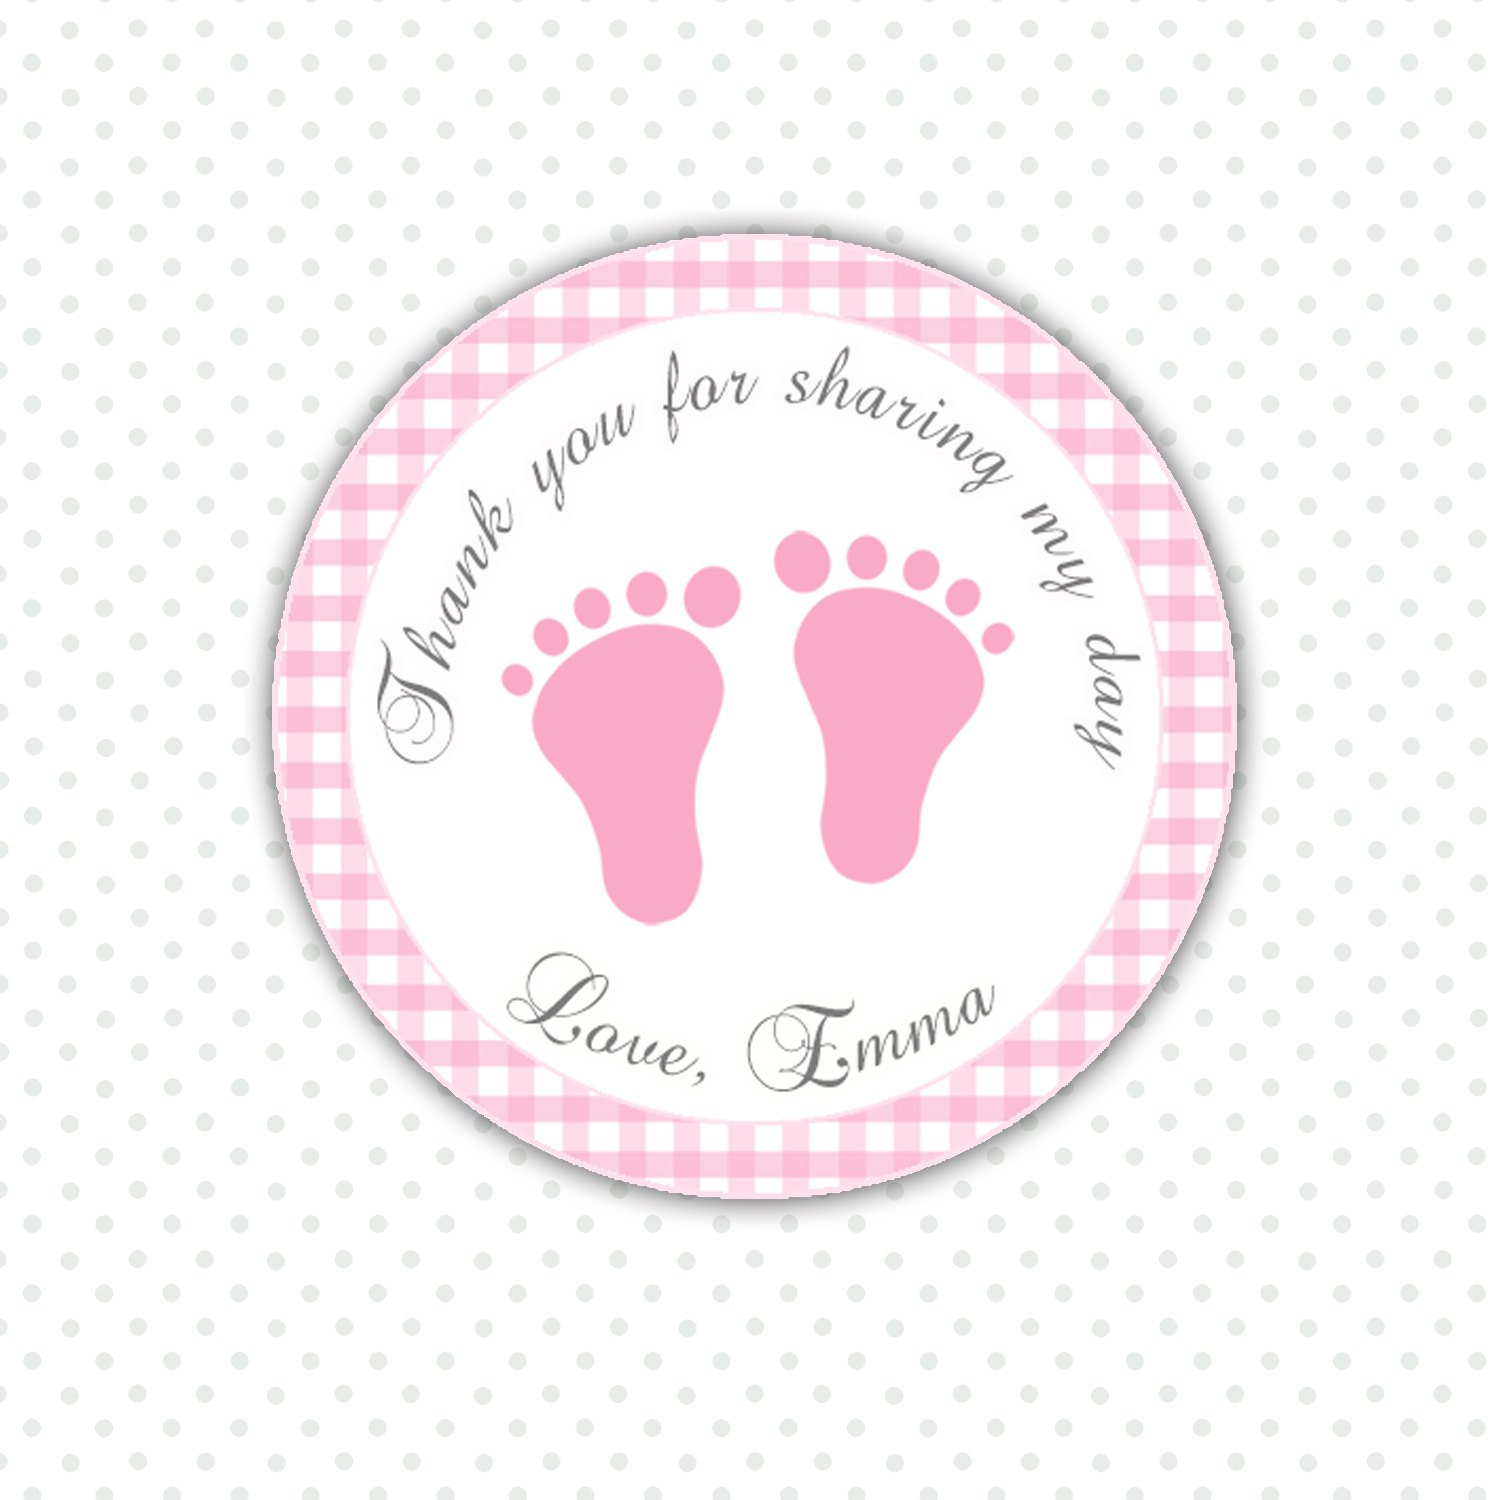 Free Printable Baby Shower Favor Stickers - Baby Shower Ideas - Free Printable Baby Shower Favor Tags Template